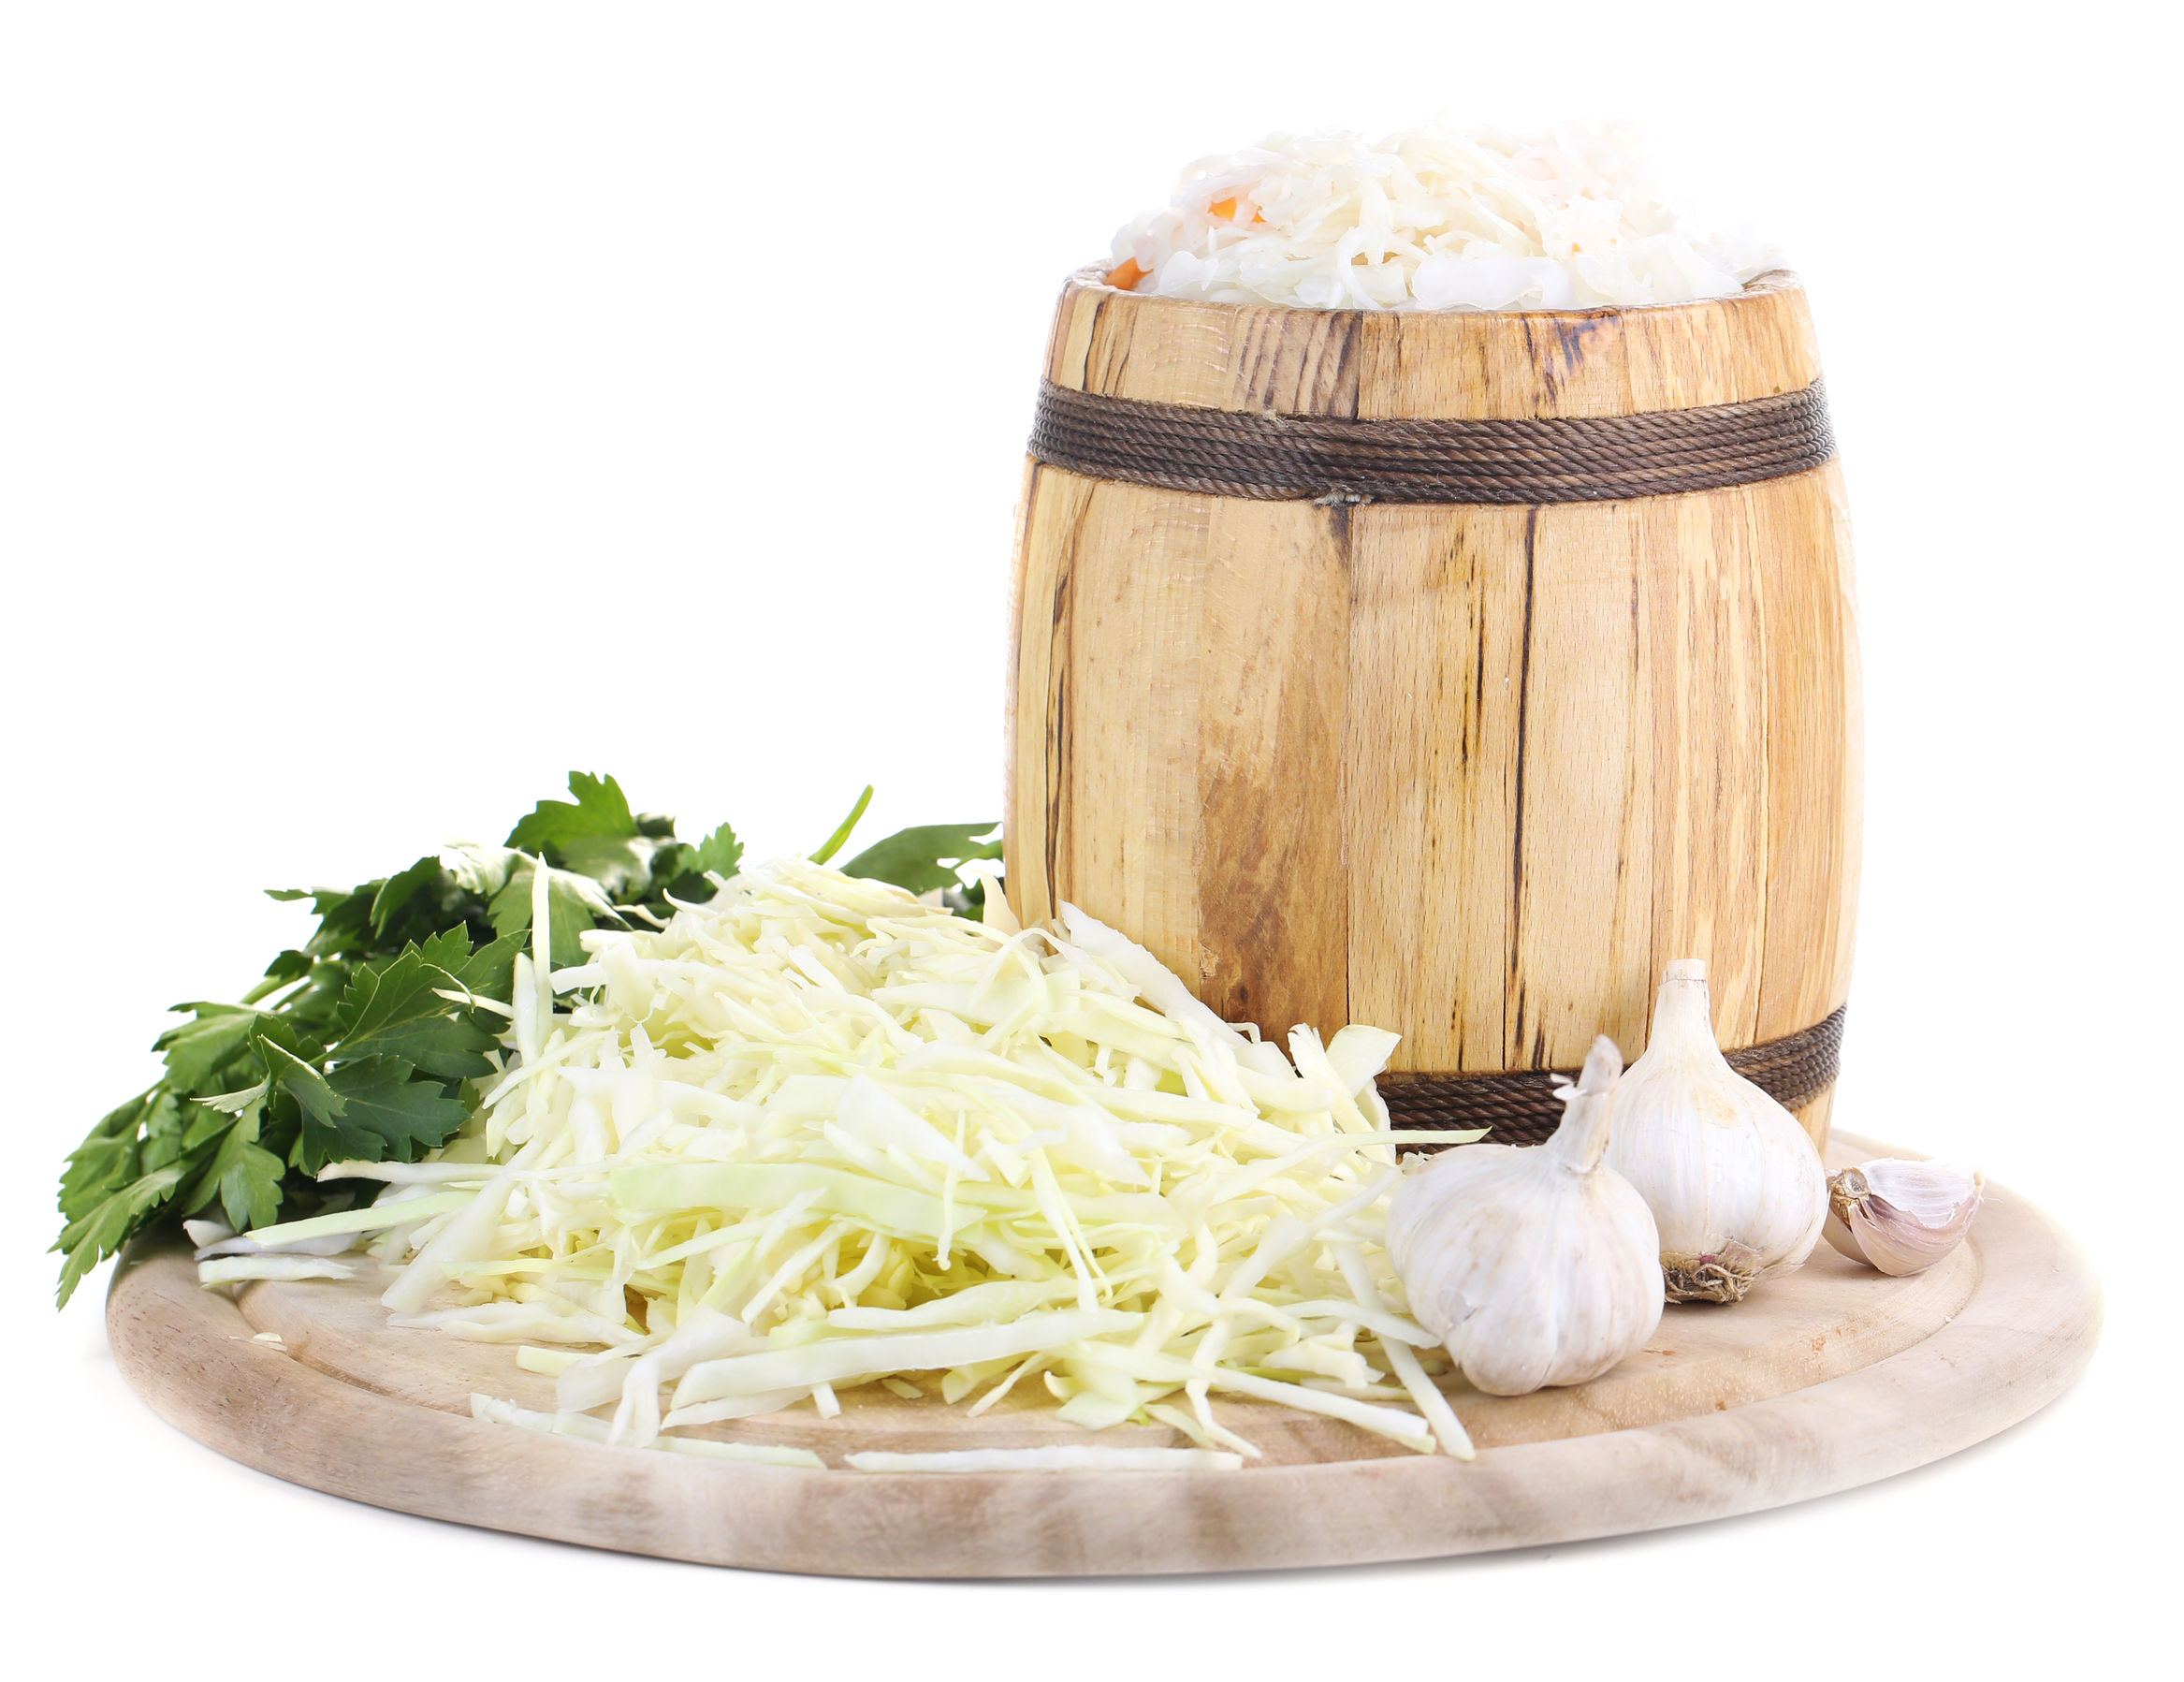 Benefits of Sauerkraut | Probiotic America